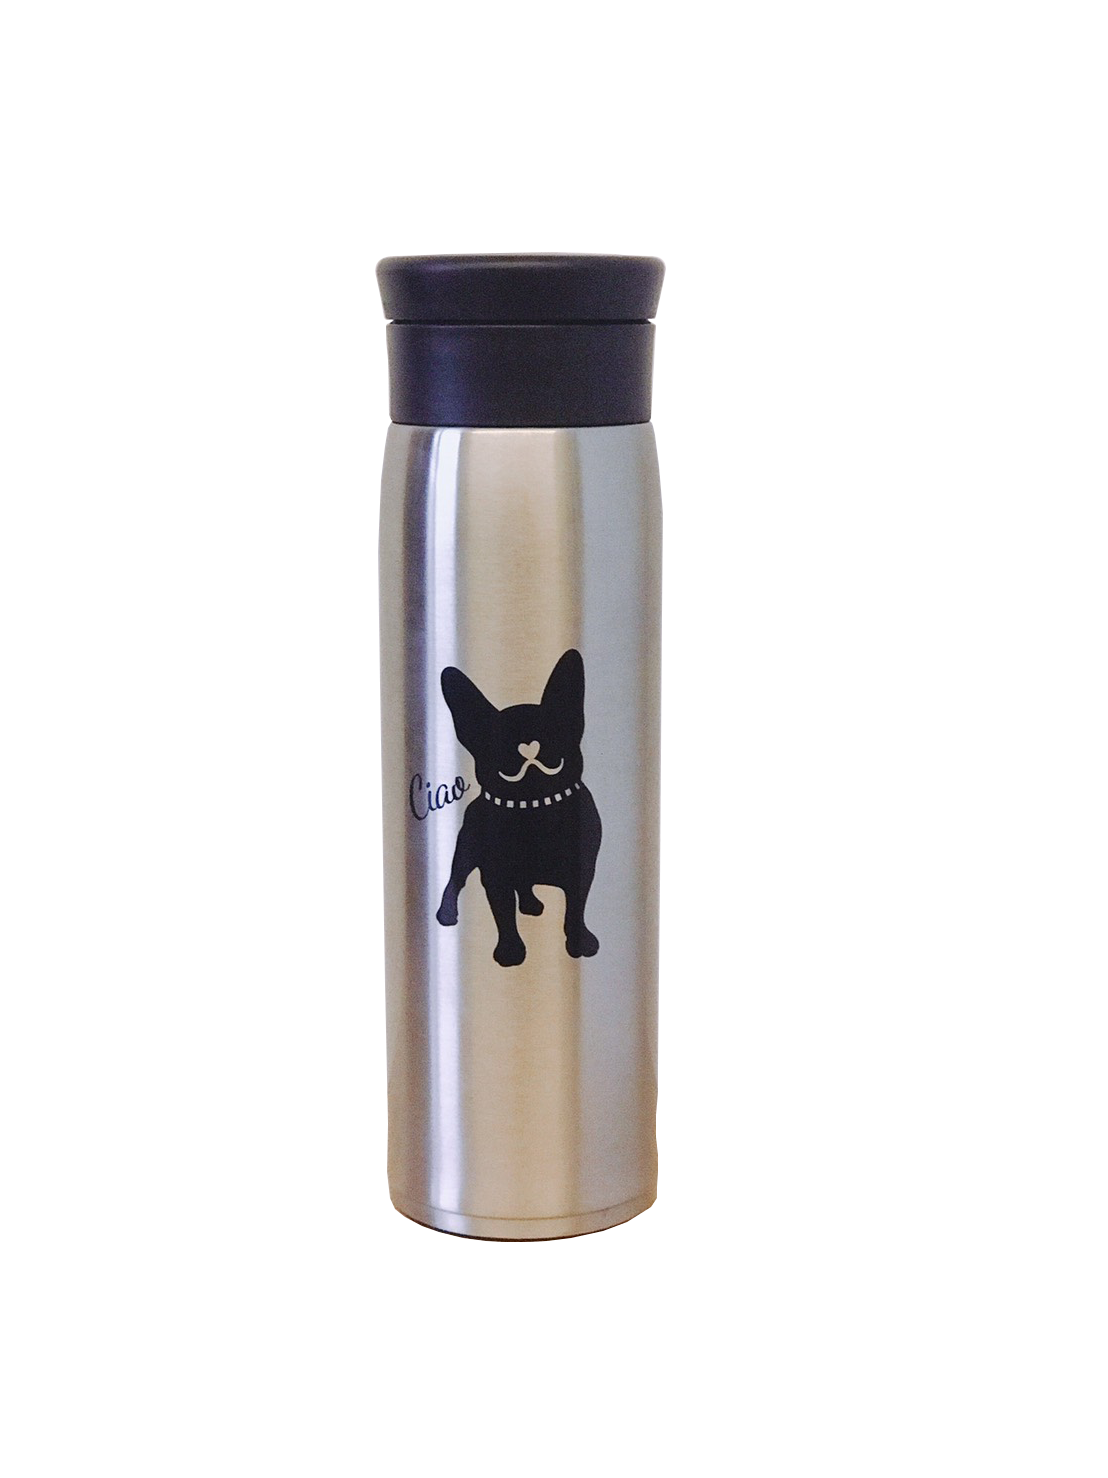 Frenchic French Bulldog Stainless Steel Thermos Bottle 17oz 500 ml Container